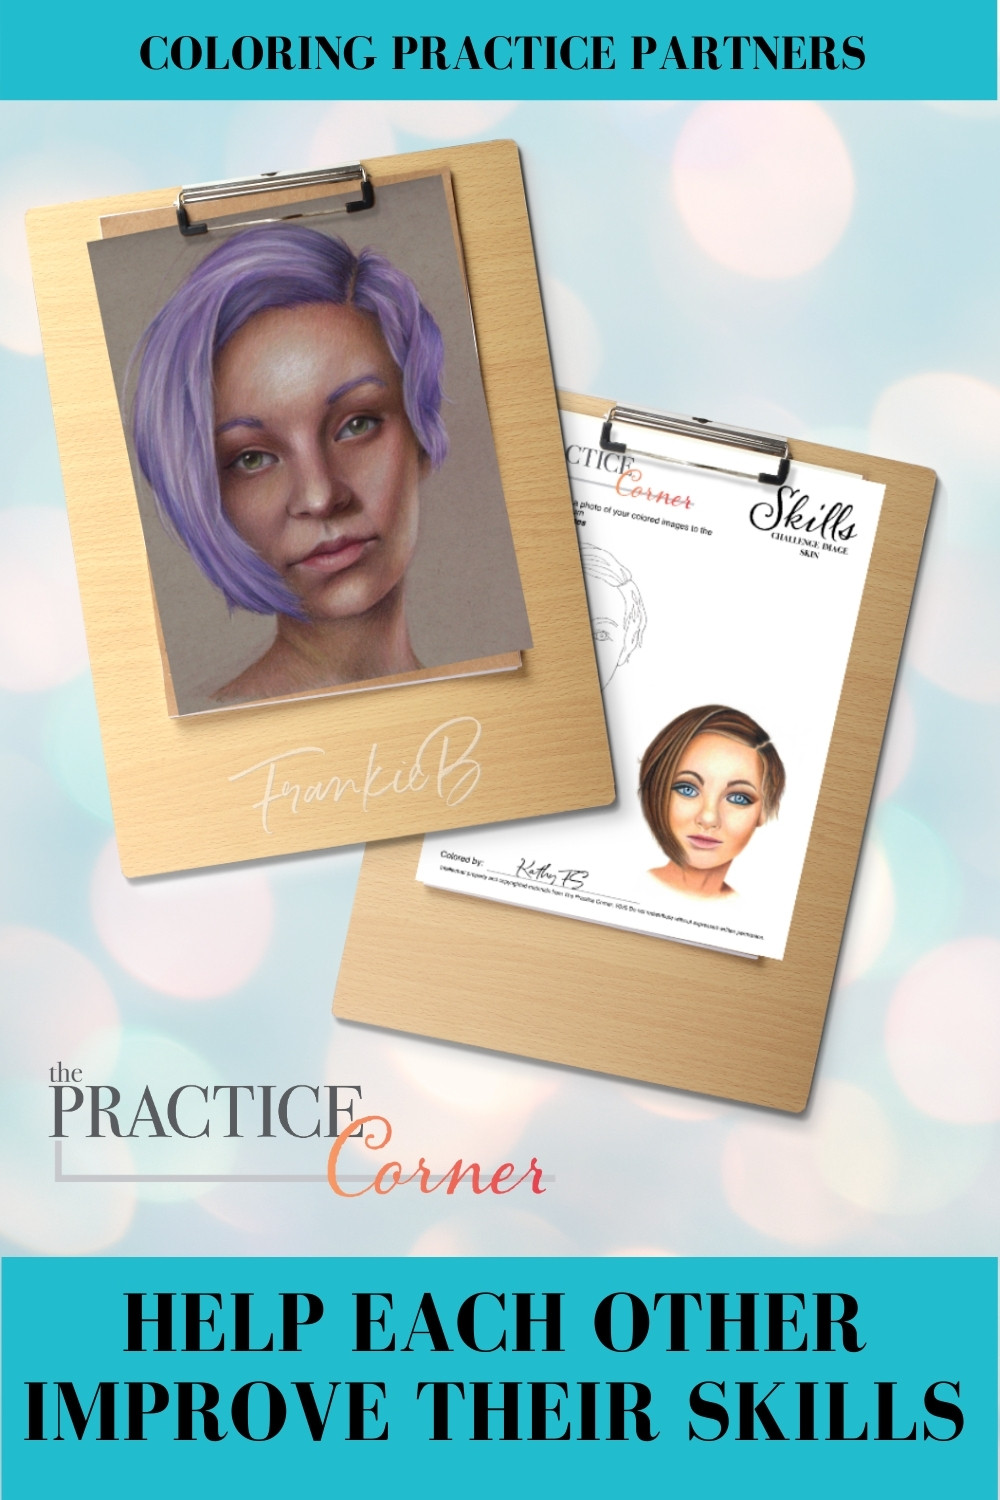 Coloring practice partner doubles the learning and makes practice more fun. | The Practice Corner | #practicepartners | #howtopractice